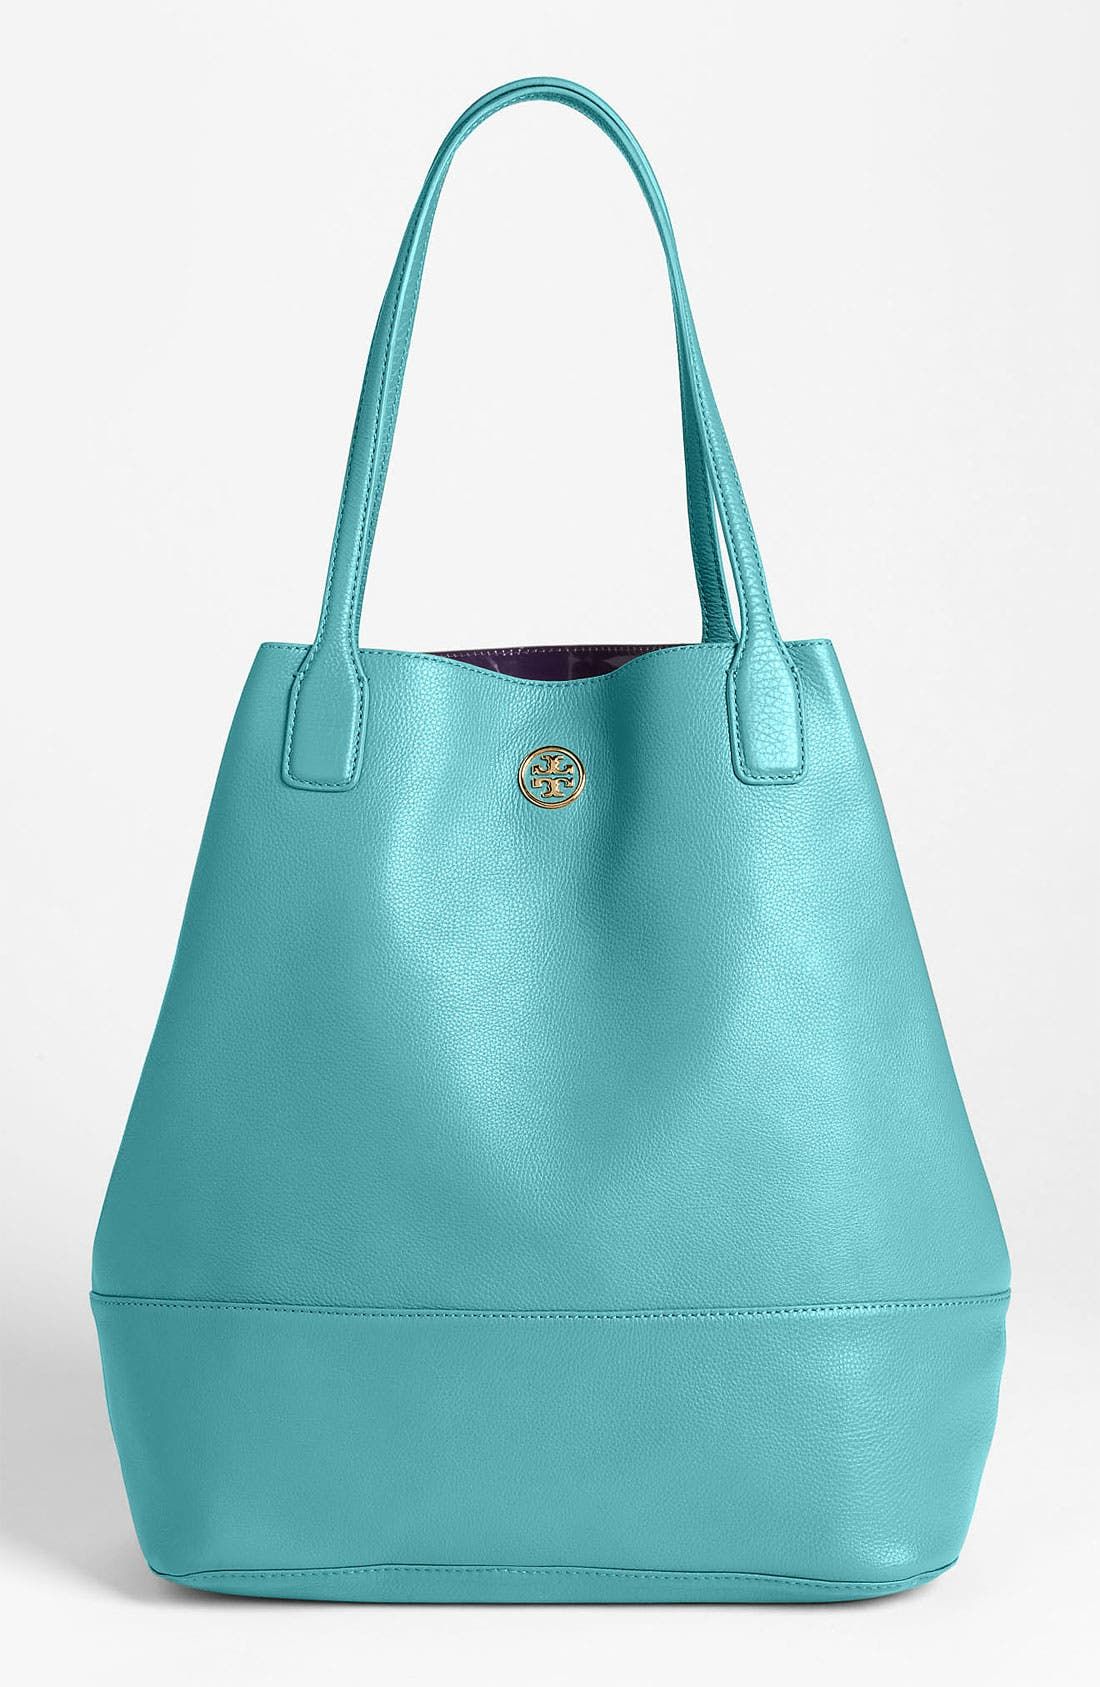 Alternate Image 1 Selected - Tory Burch 'Michelle Angelux' Leather Tote